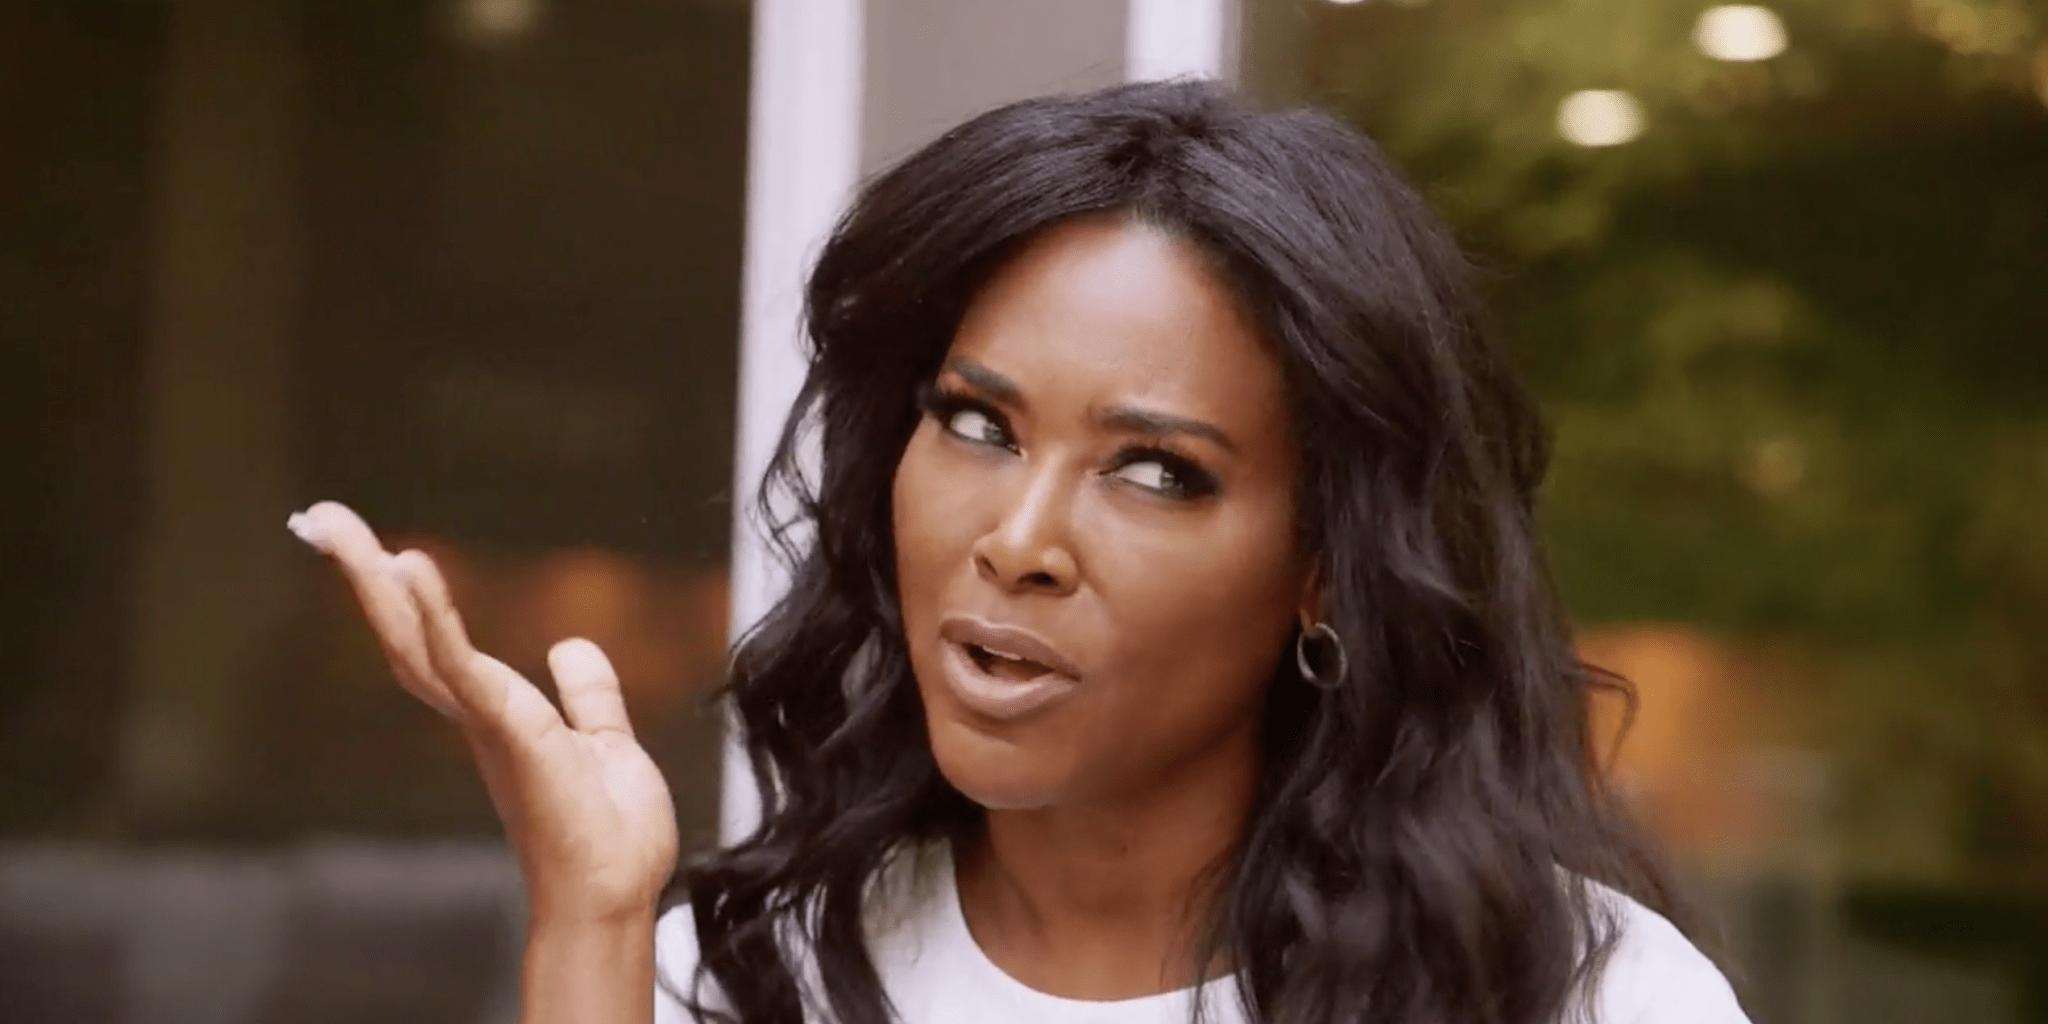 Kenya Moore's Latest Photo Has Fans Praising Her Jaw-Dropping Beauty